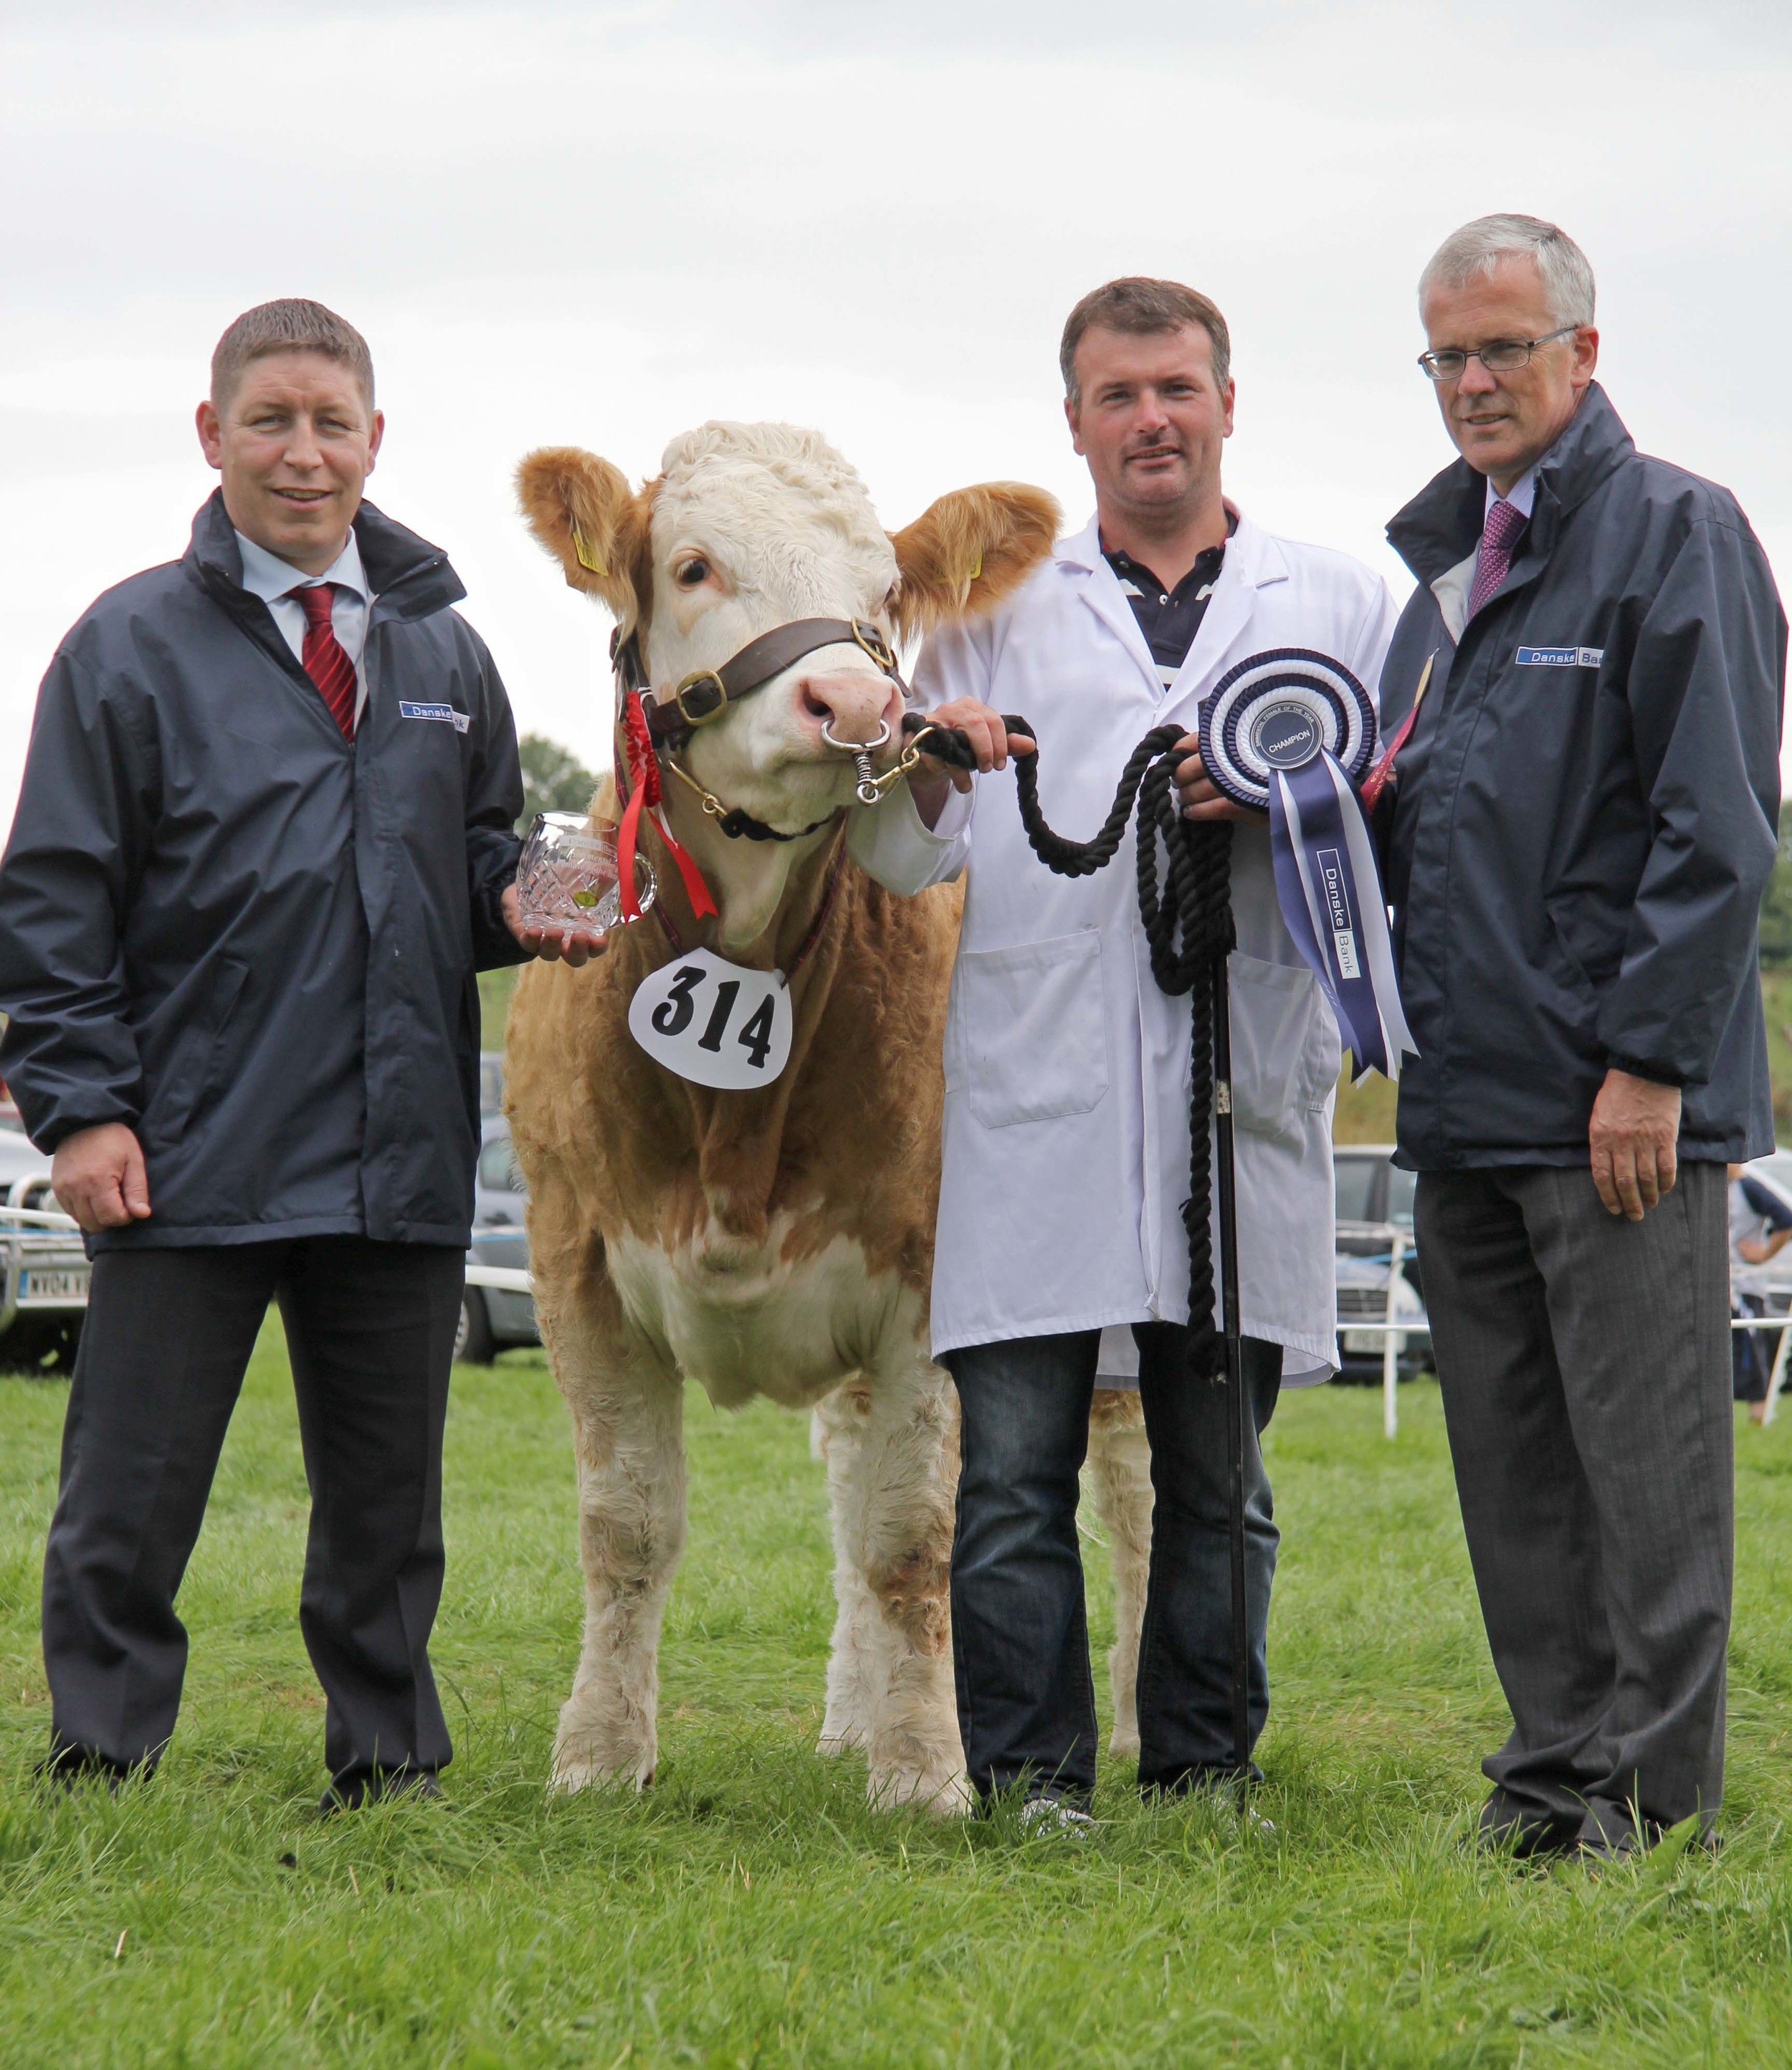 Danske Bank Simmental Female of the Year was Ballinlare Farm Empress shown by Alan Wilson, Newry. Pictured at the Enniskillen Show presentation are Rodney Brown and John Henning, Danske Bank, sponsors.